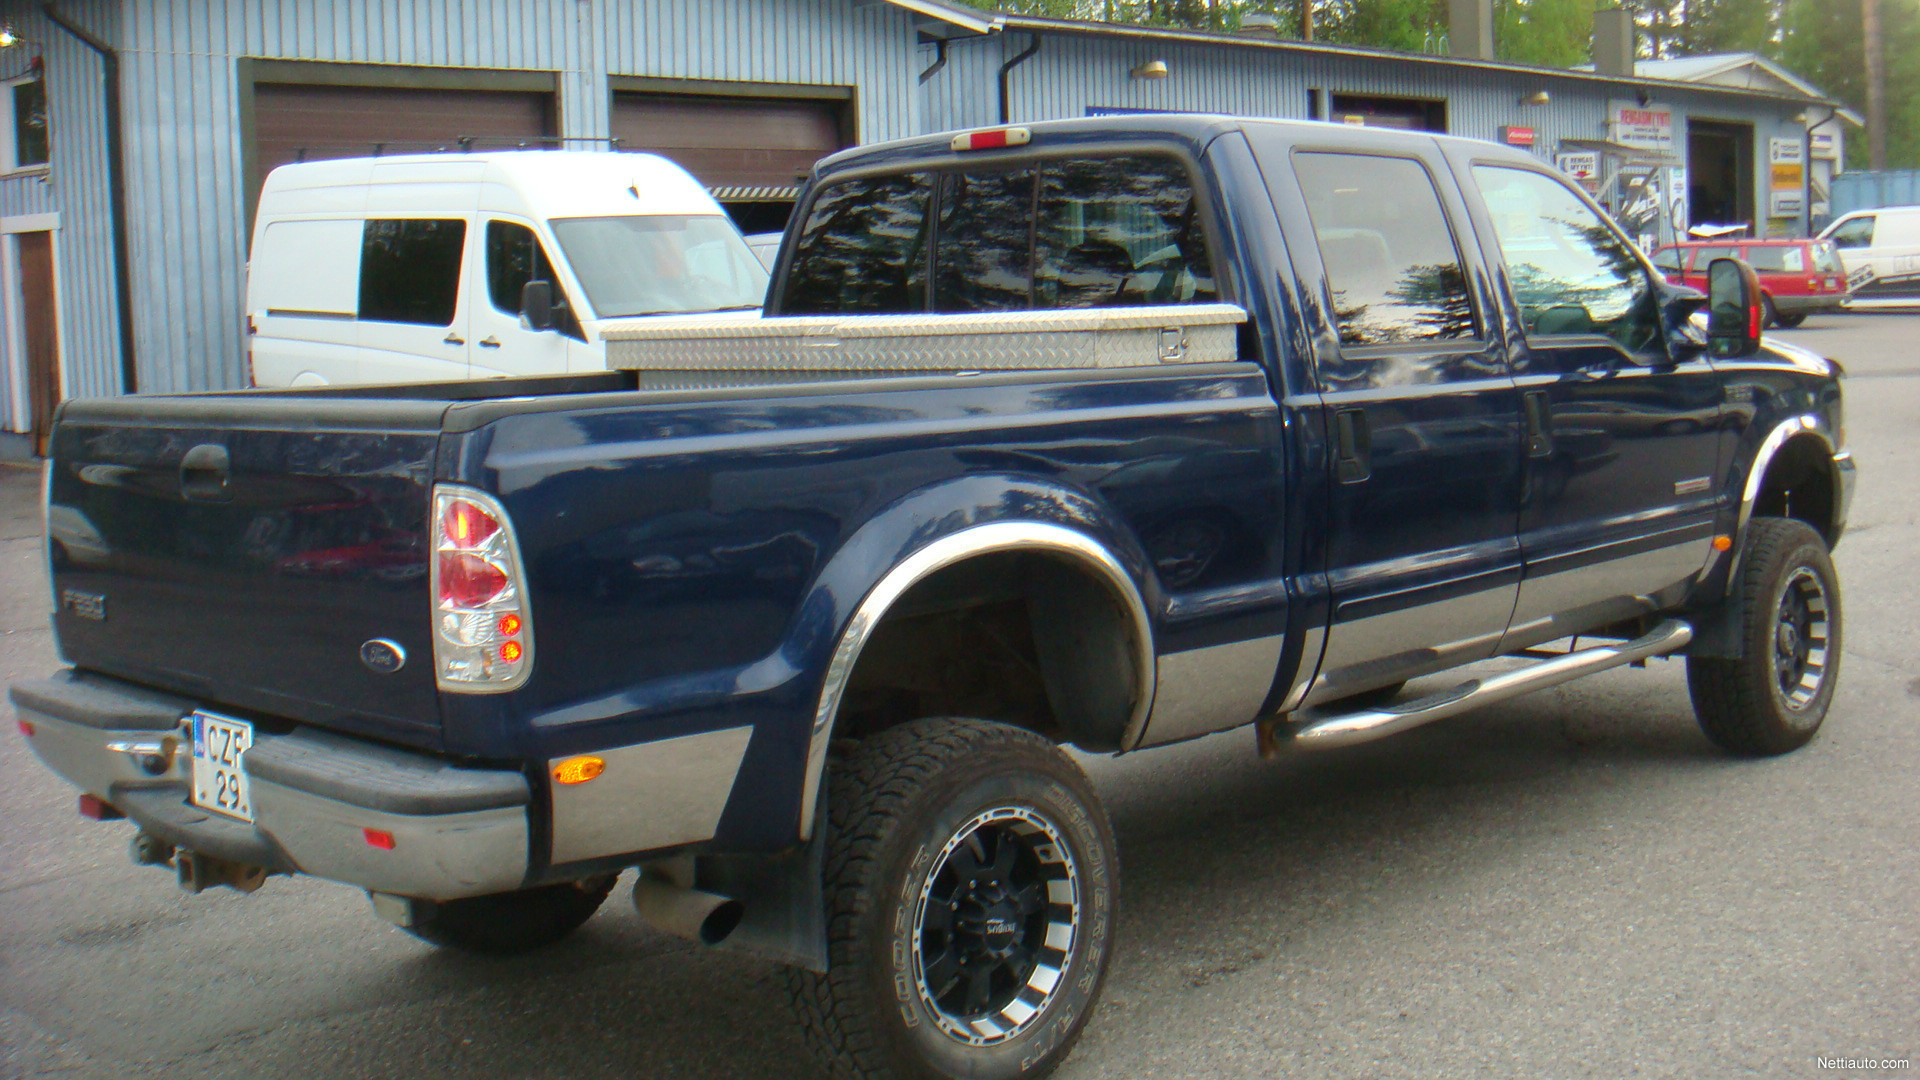 ford f250 xlt super duty 6 0 diesel pickup 2003 used vehicle nettiauto. Black Bedroom Furniture Sets. Home Design Ideas